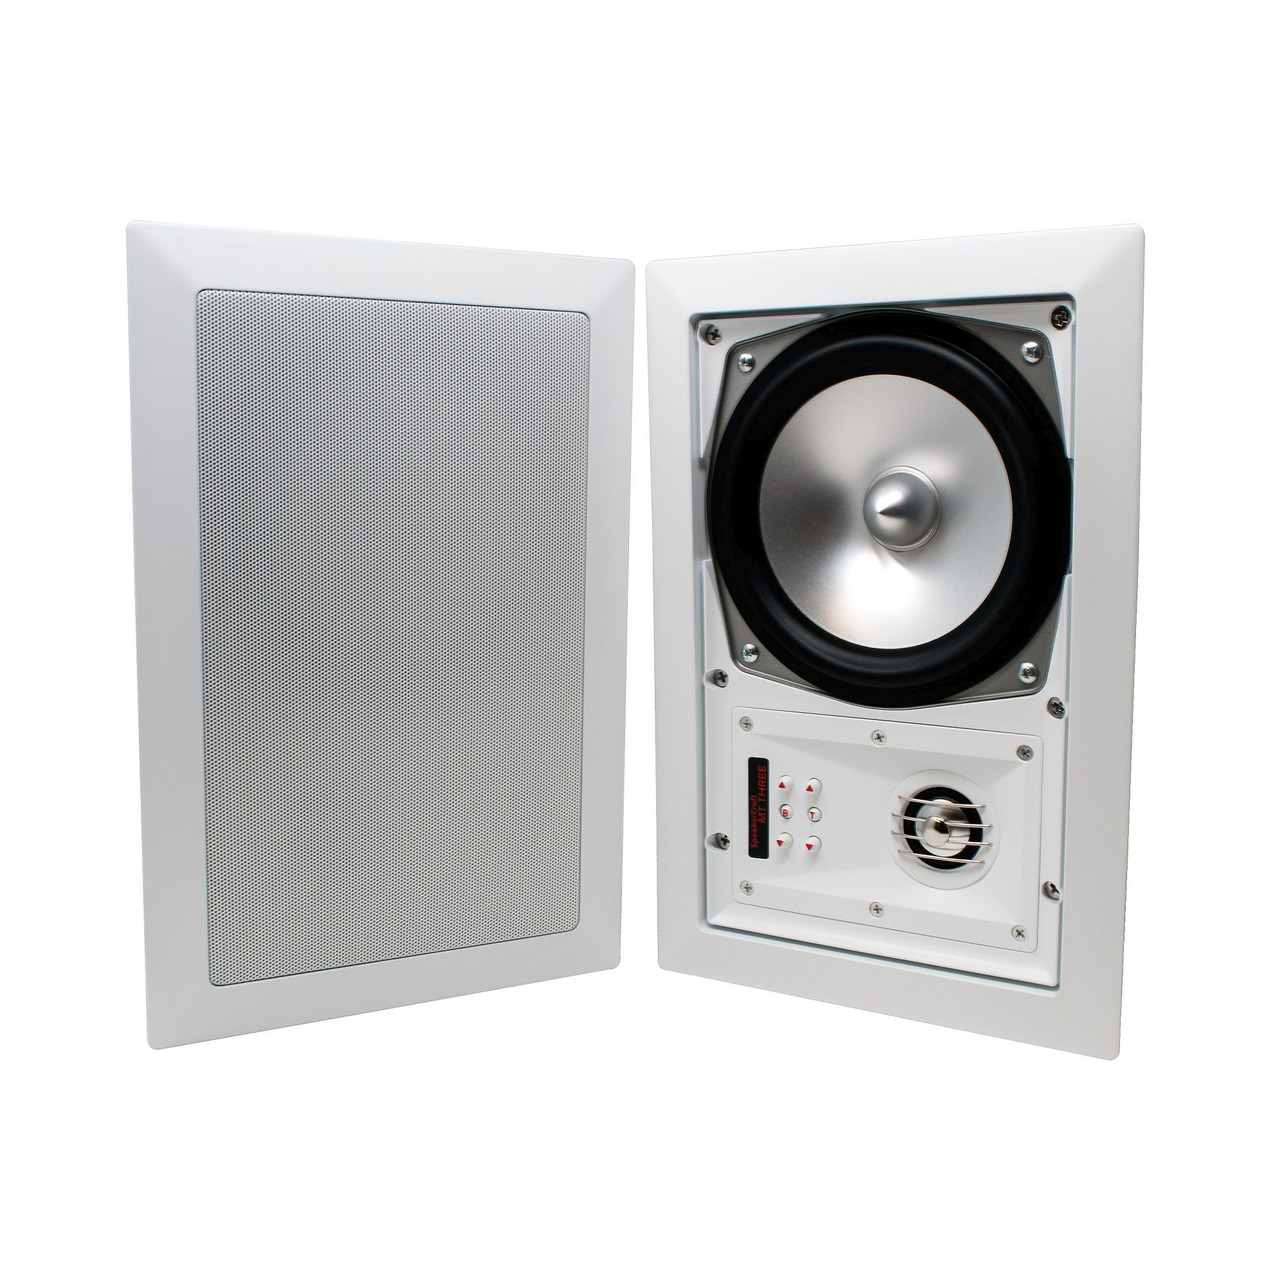 SpeakerCraft - Two pairs of MT6Three In-Wall / Ceiling Speakers (4  Speakers) with Yamaha Network Receiver